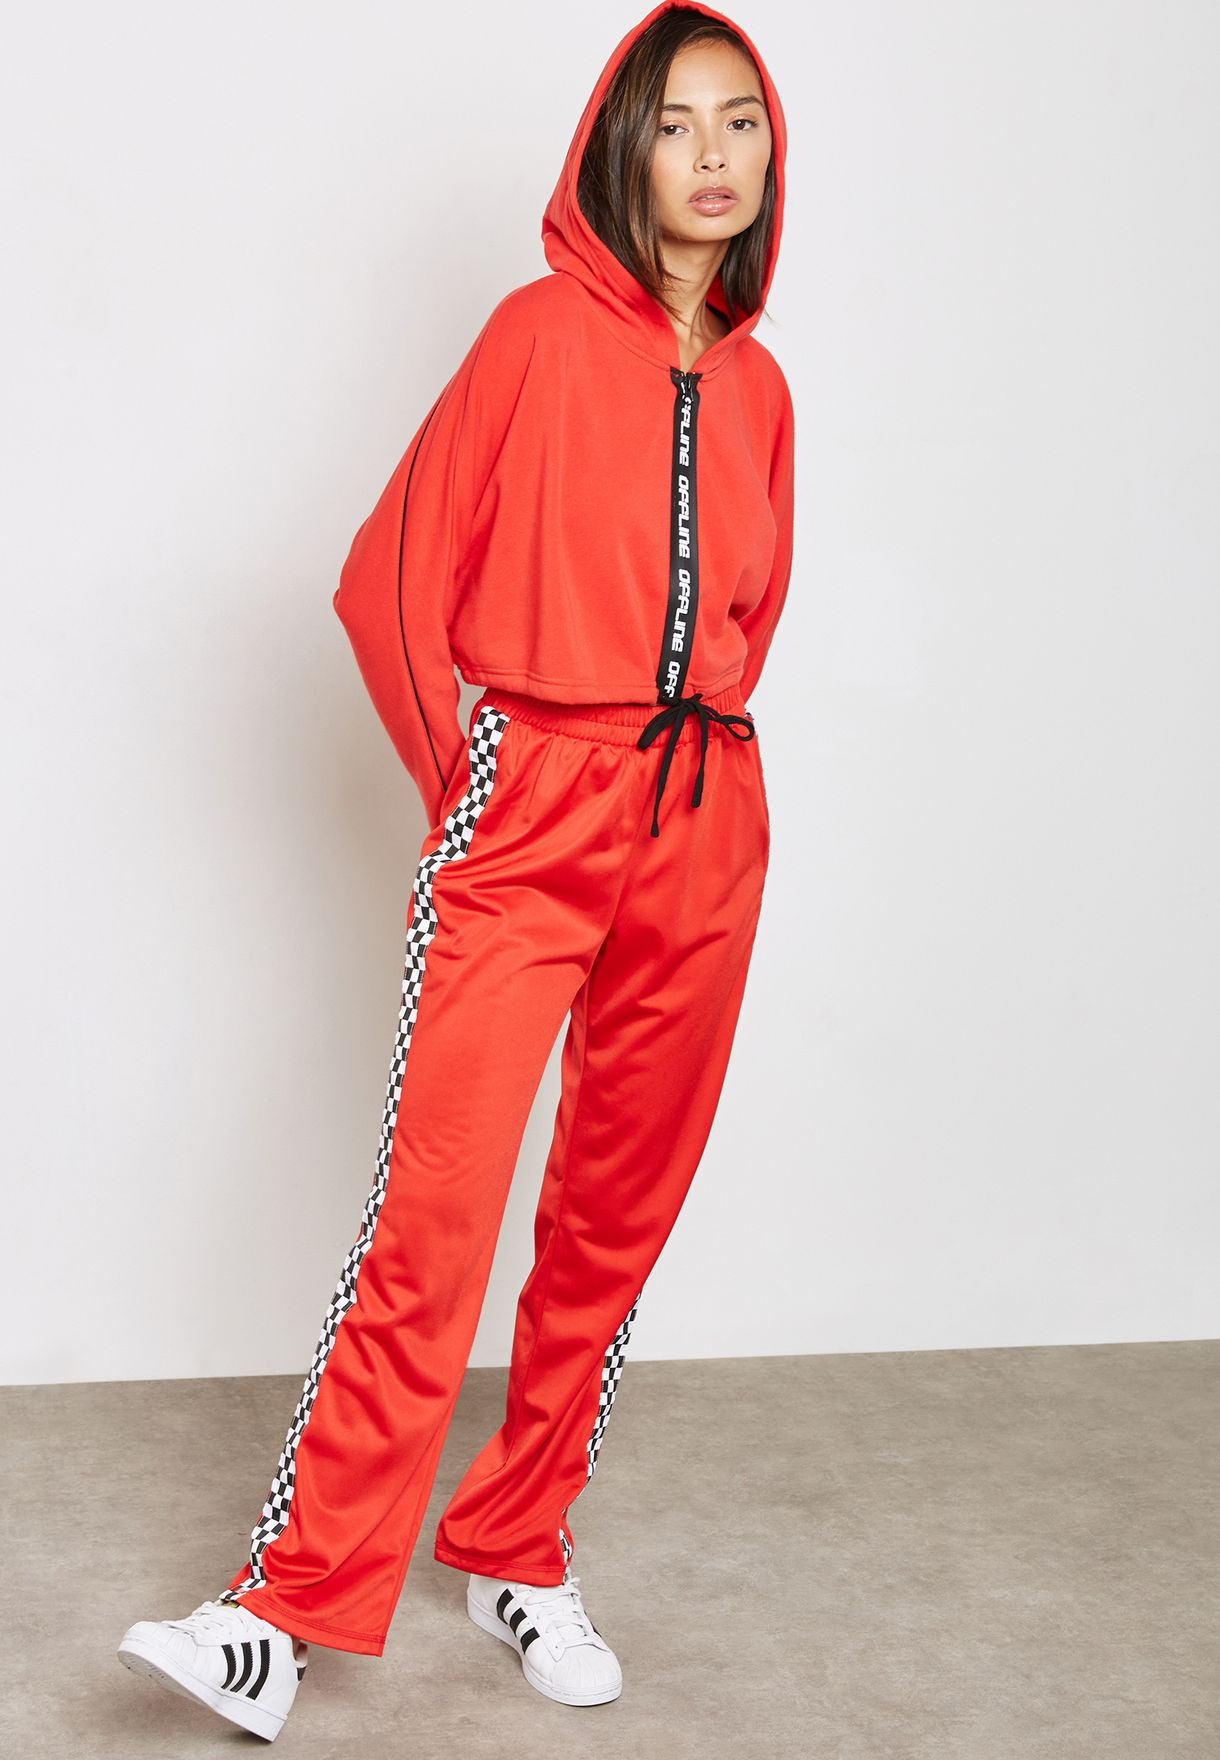 a7d140b6919d7 Shop Forever 21 red Graphic Cropped Hoodie 193404 for Women in Saudi ...